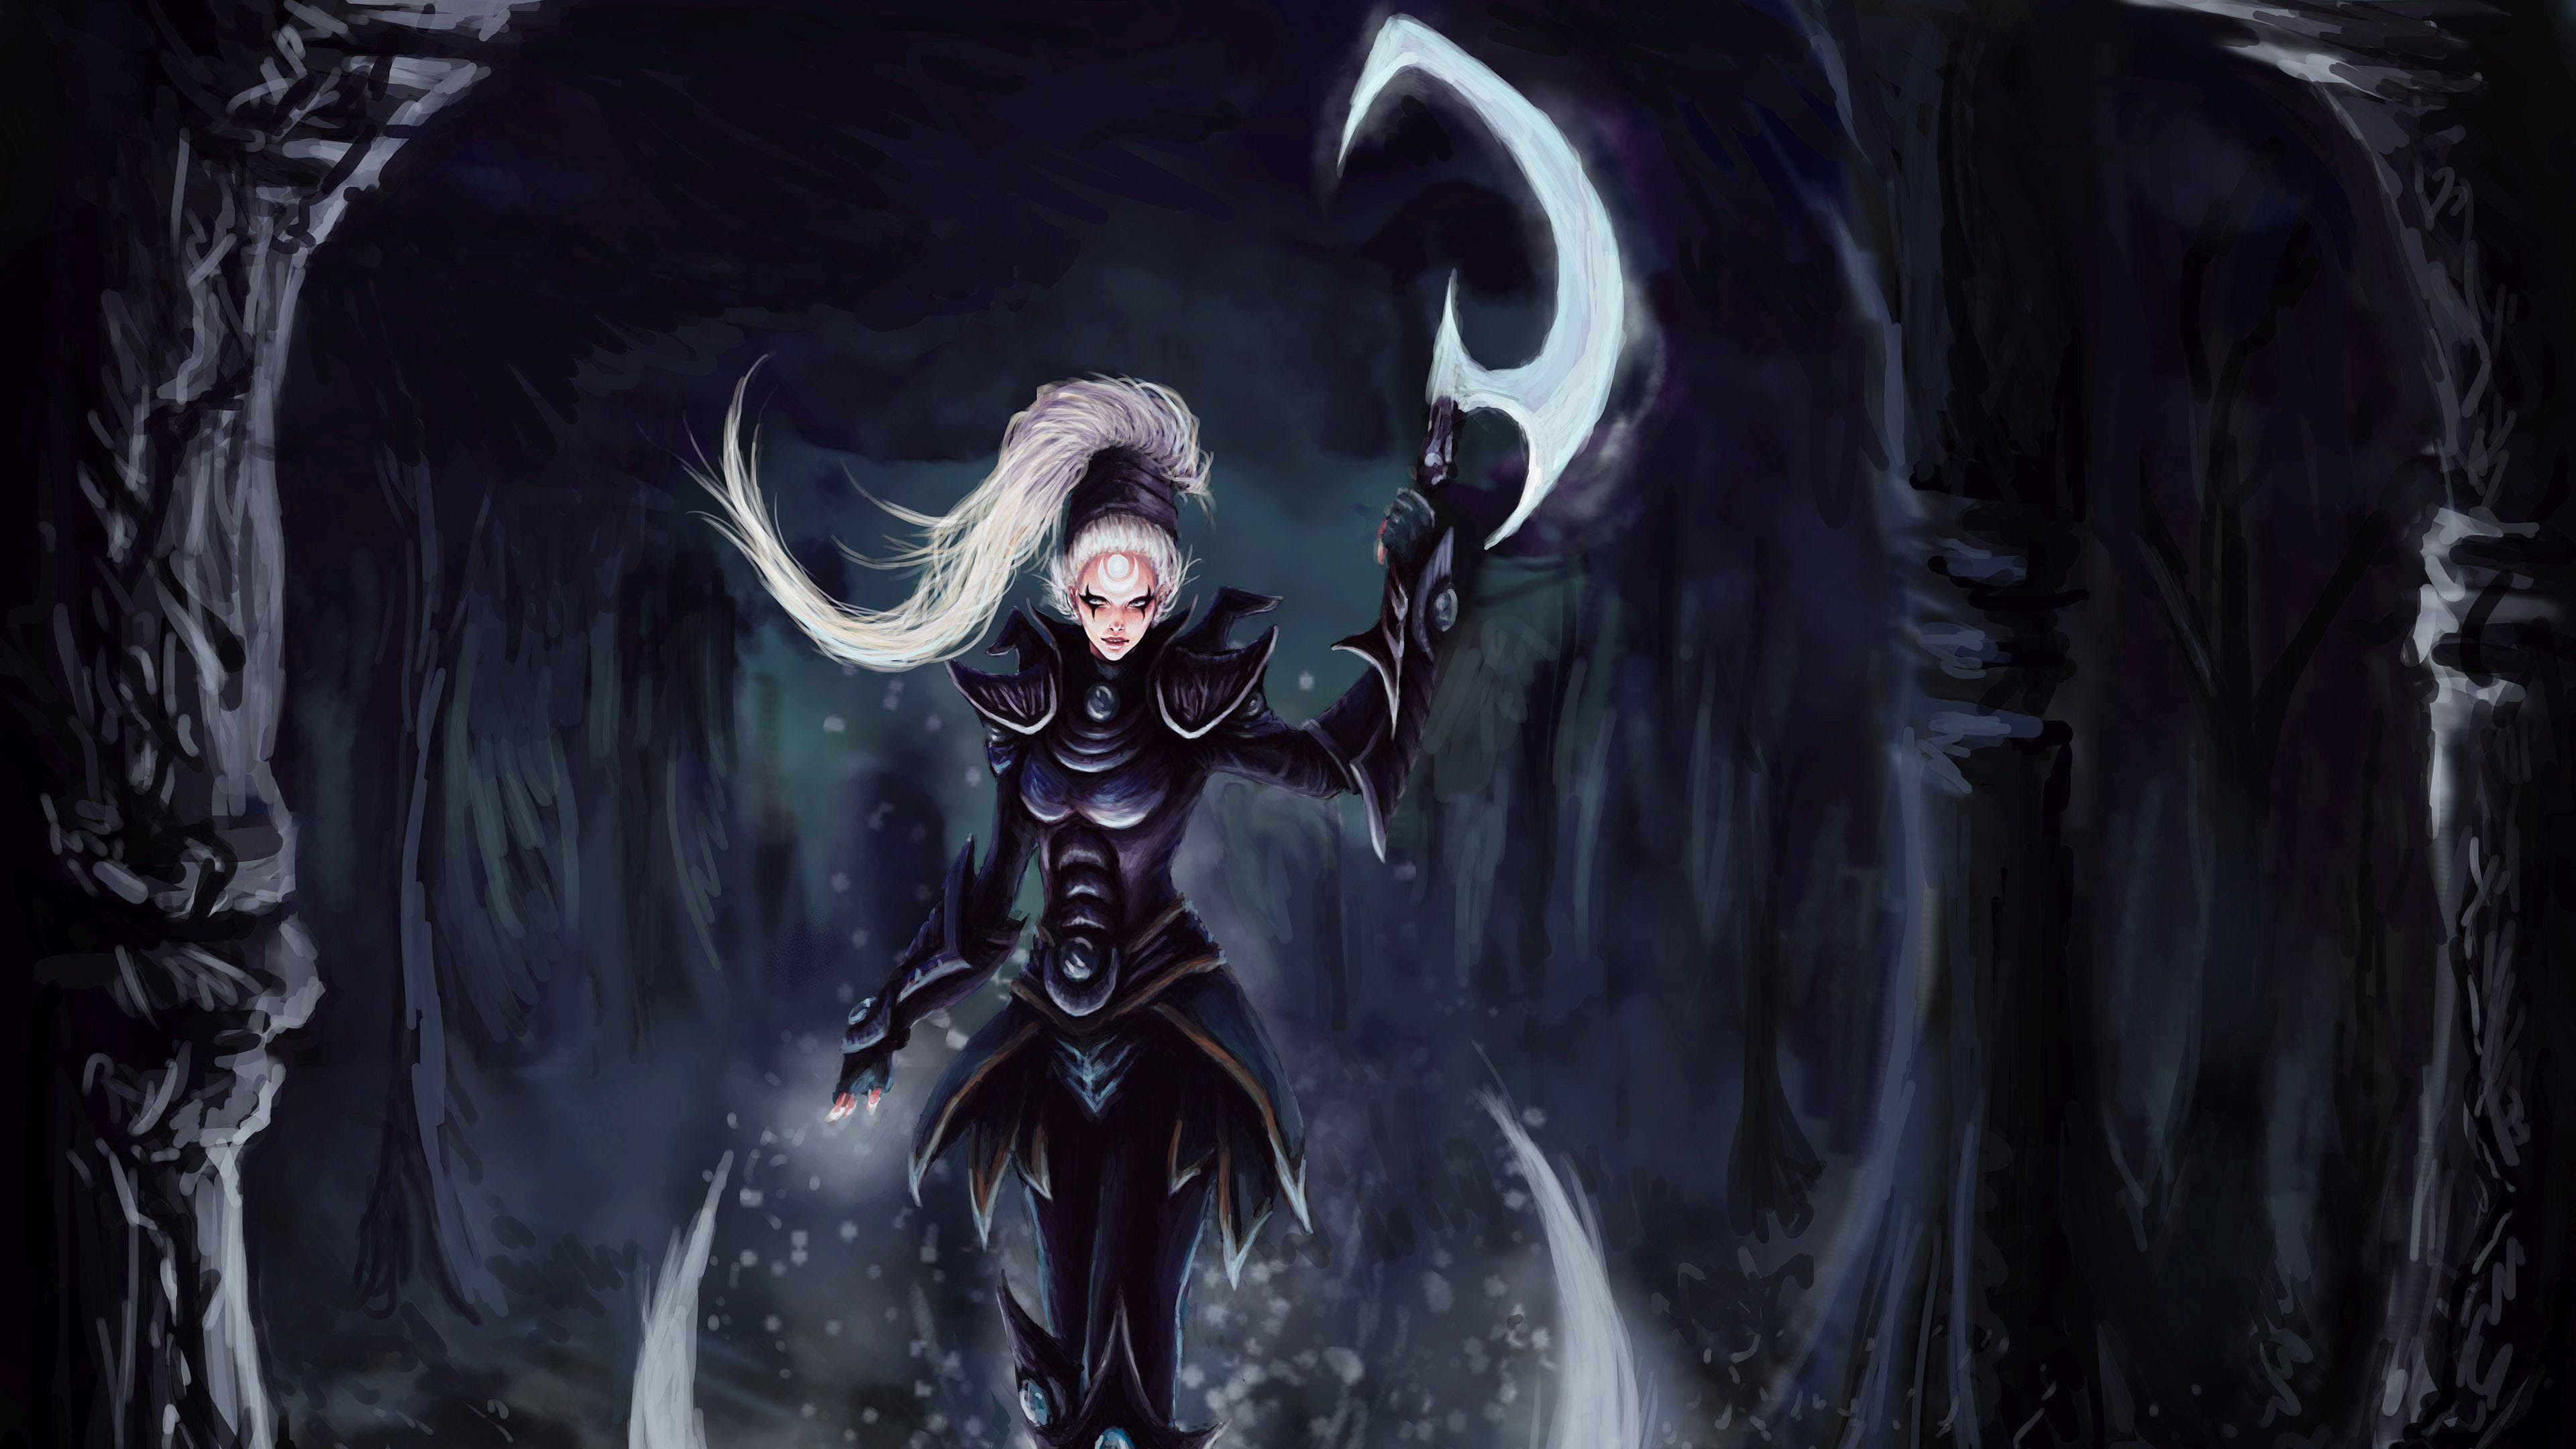 Hd Diana In The Forest League Of Legends Wallpaper Download